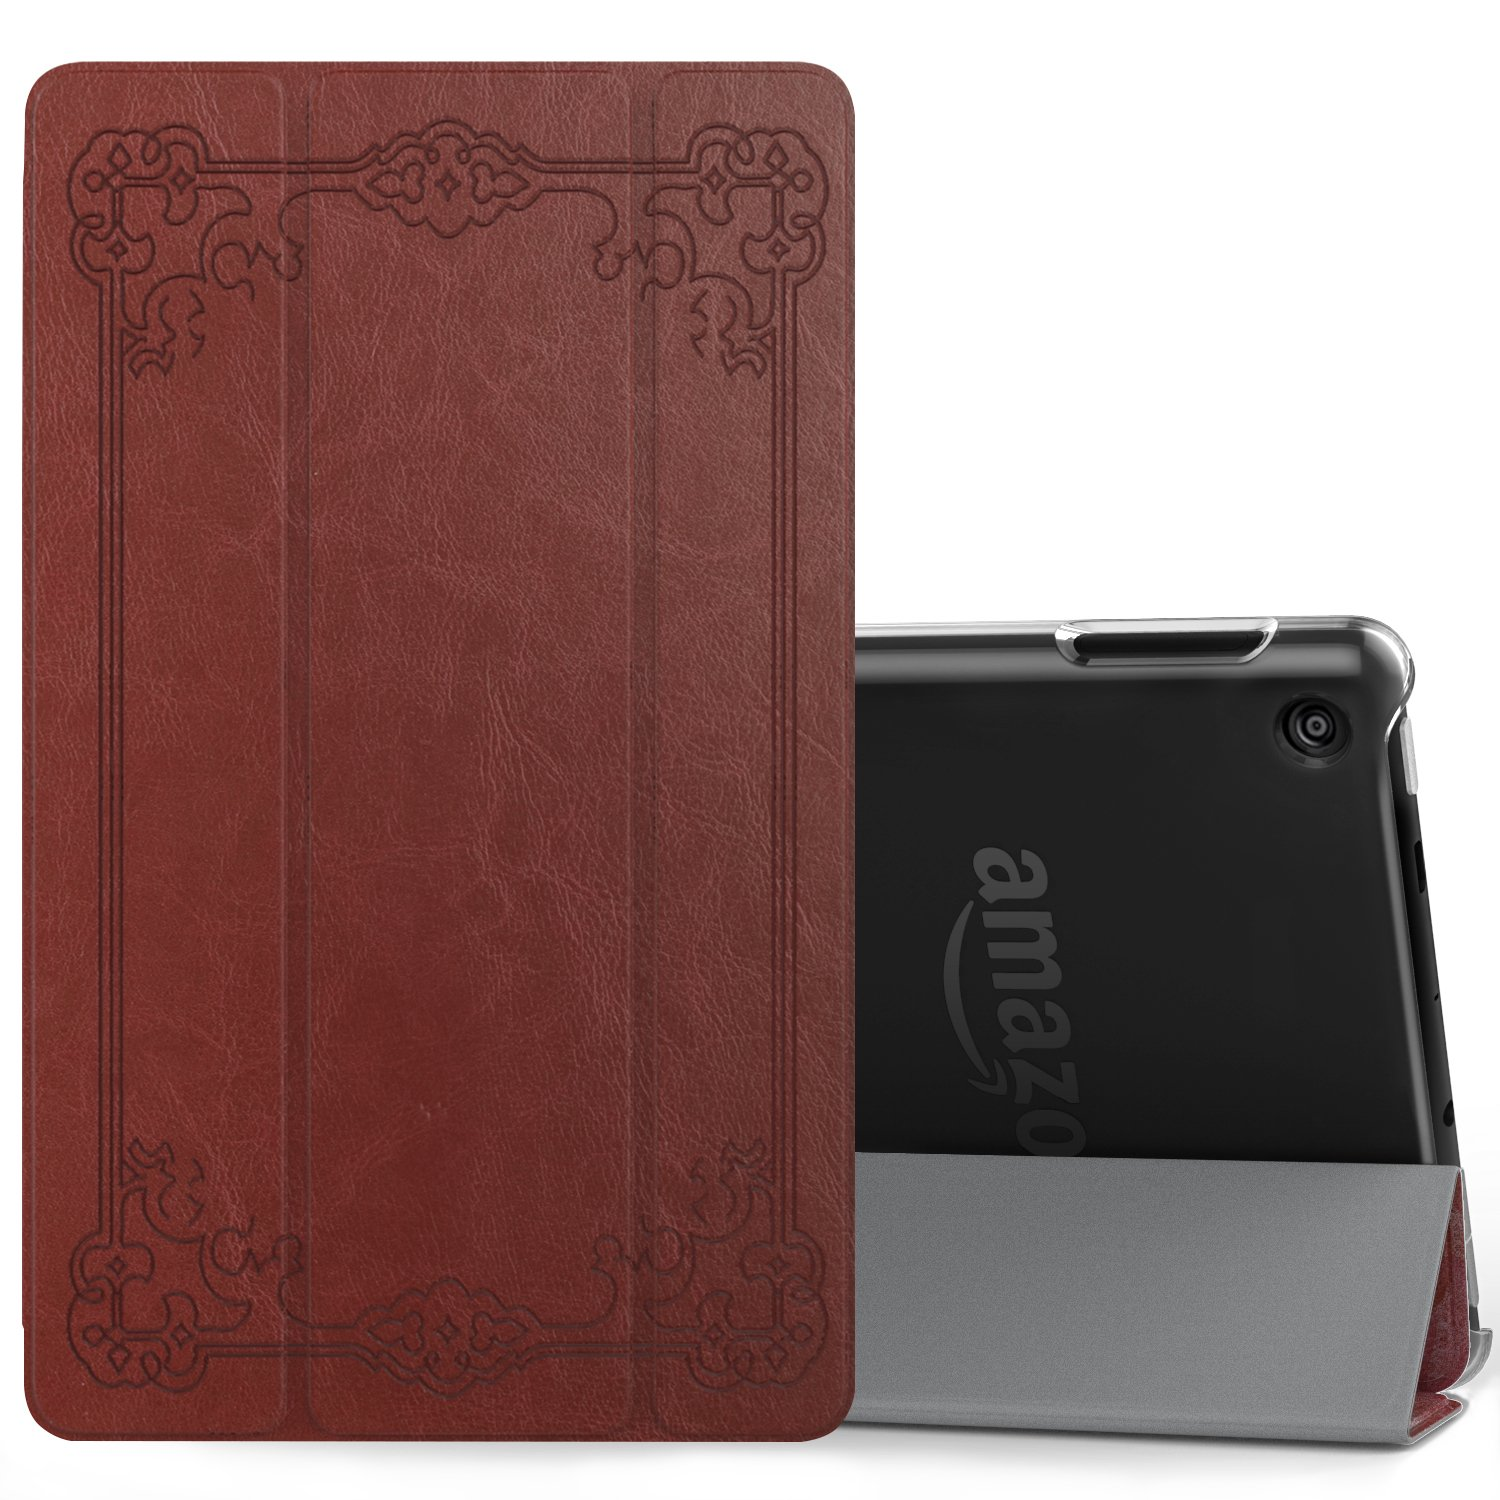 MoKo Case for All-New Amazon Fire 7 Tablet (7th Generation, 2017 Release Only) - Ultra Lightweight Slim Shell Stand Cover with Translucent Frosted Back for Fire 7, Vintage Style (with Auto Wake/Sleep)